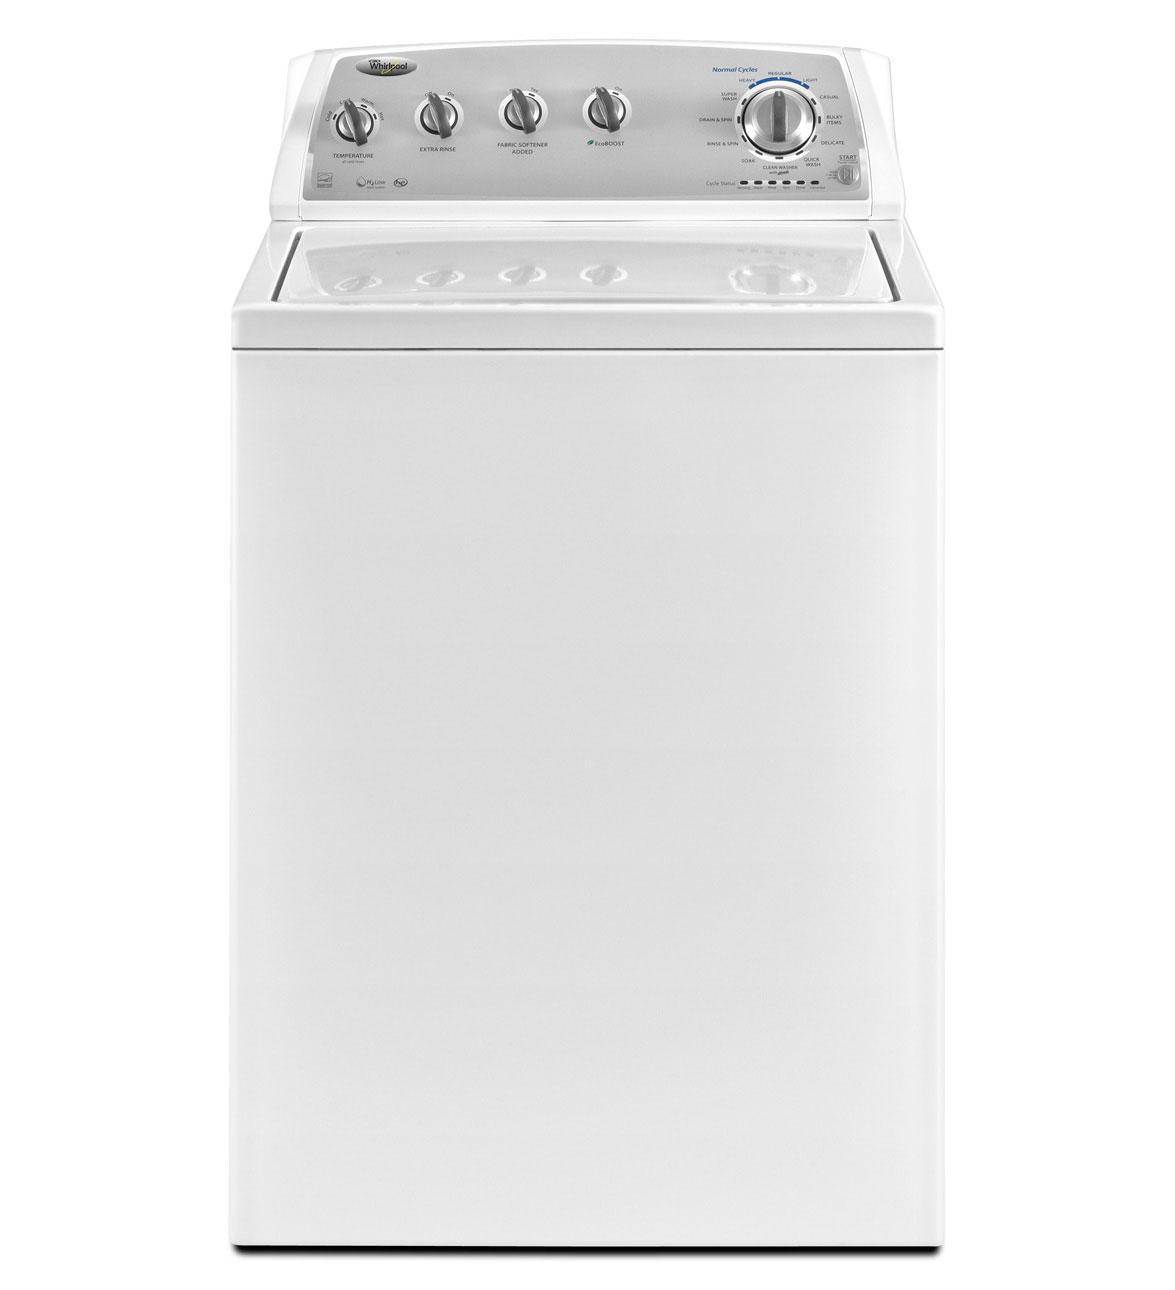 Review of Whirlpool 3.6 cu ft High-Efficiency Top-Load Washer (White) ENERGY STAR (Model: WTW4950XW)